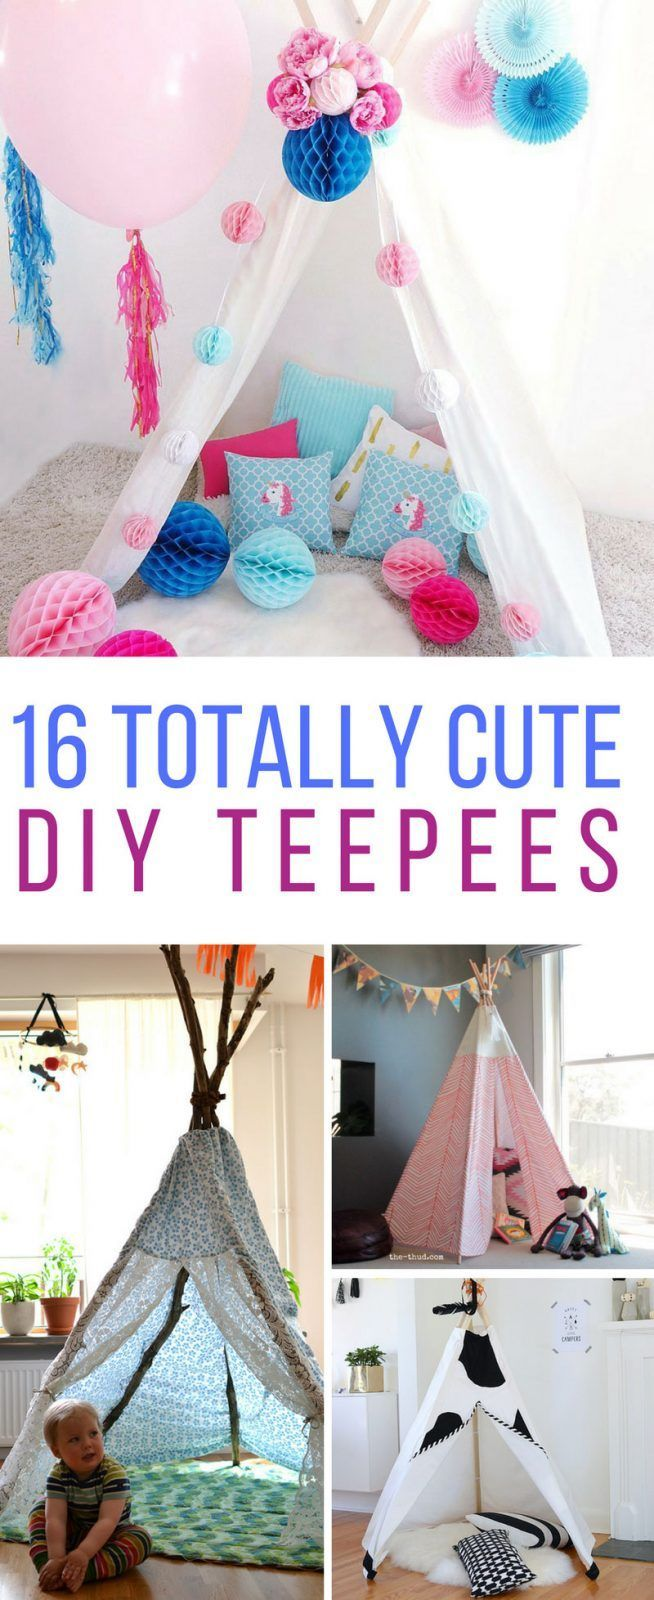 These DIY teepees are brilliant! Thanks for sharing!